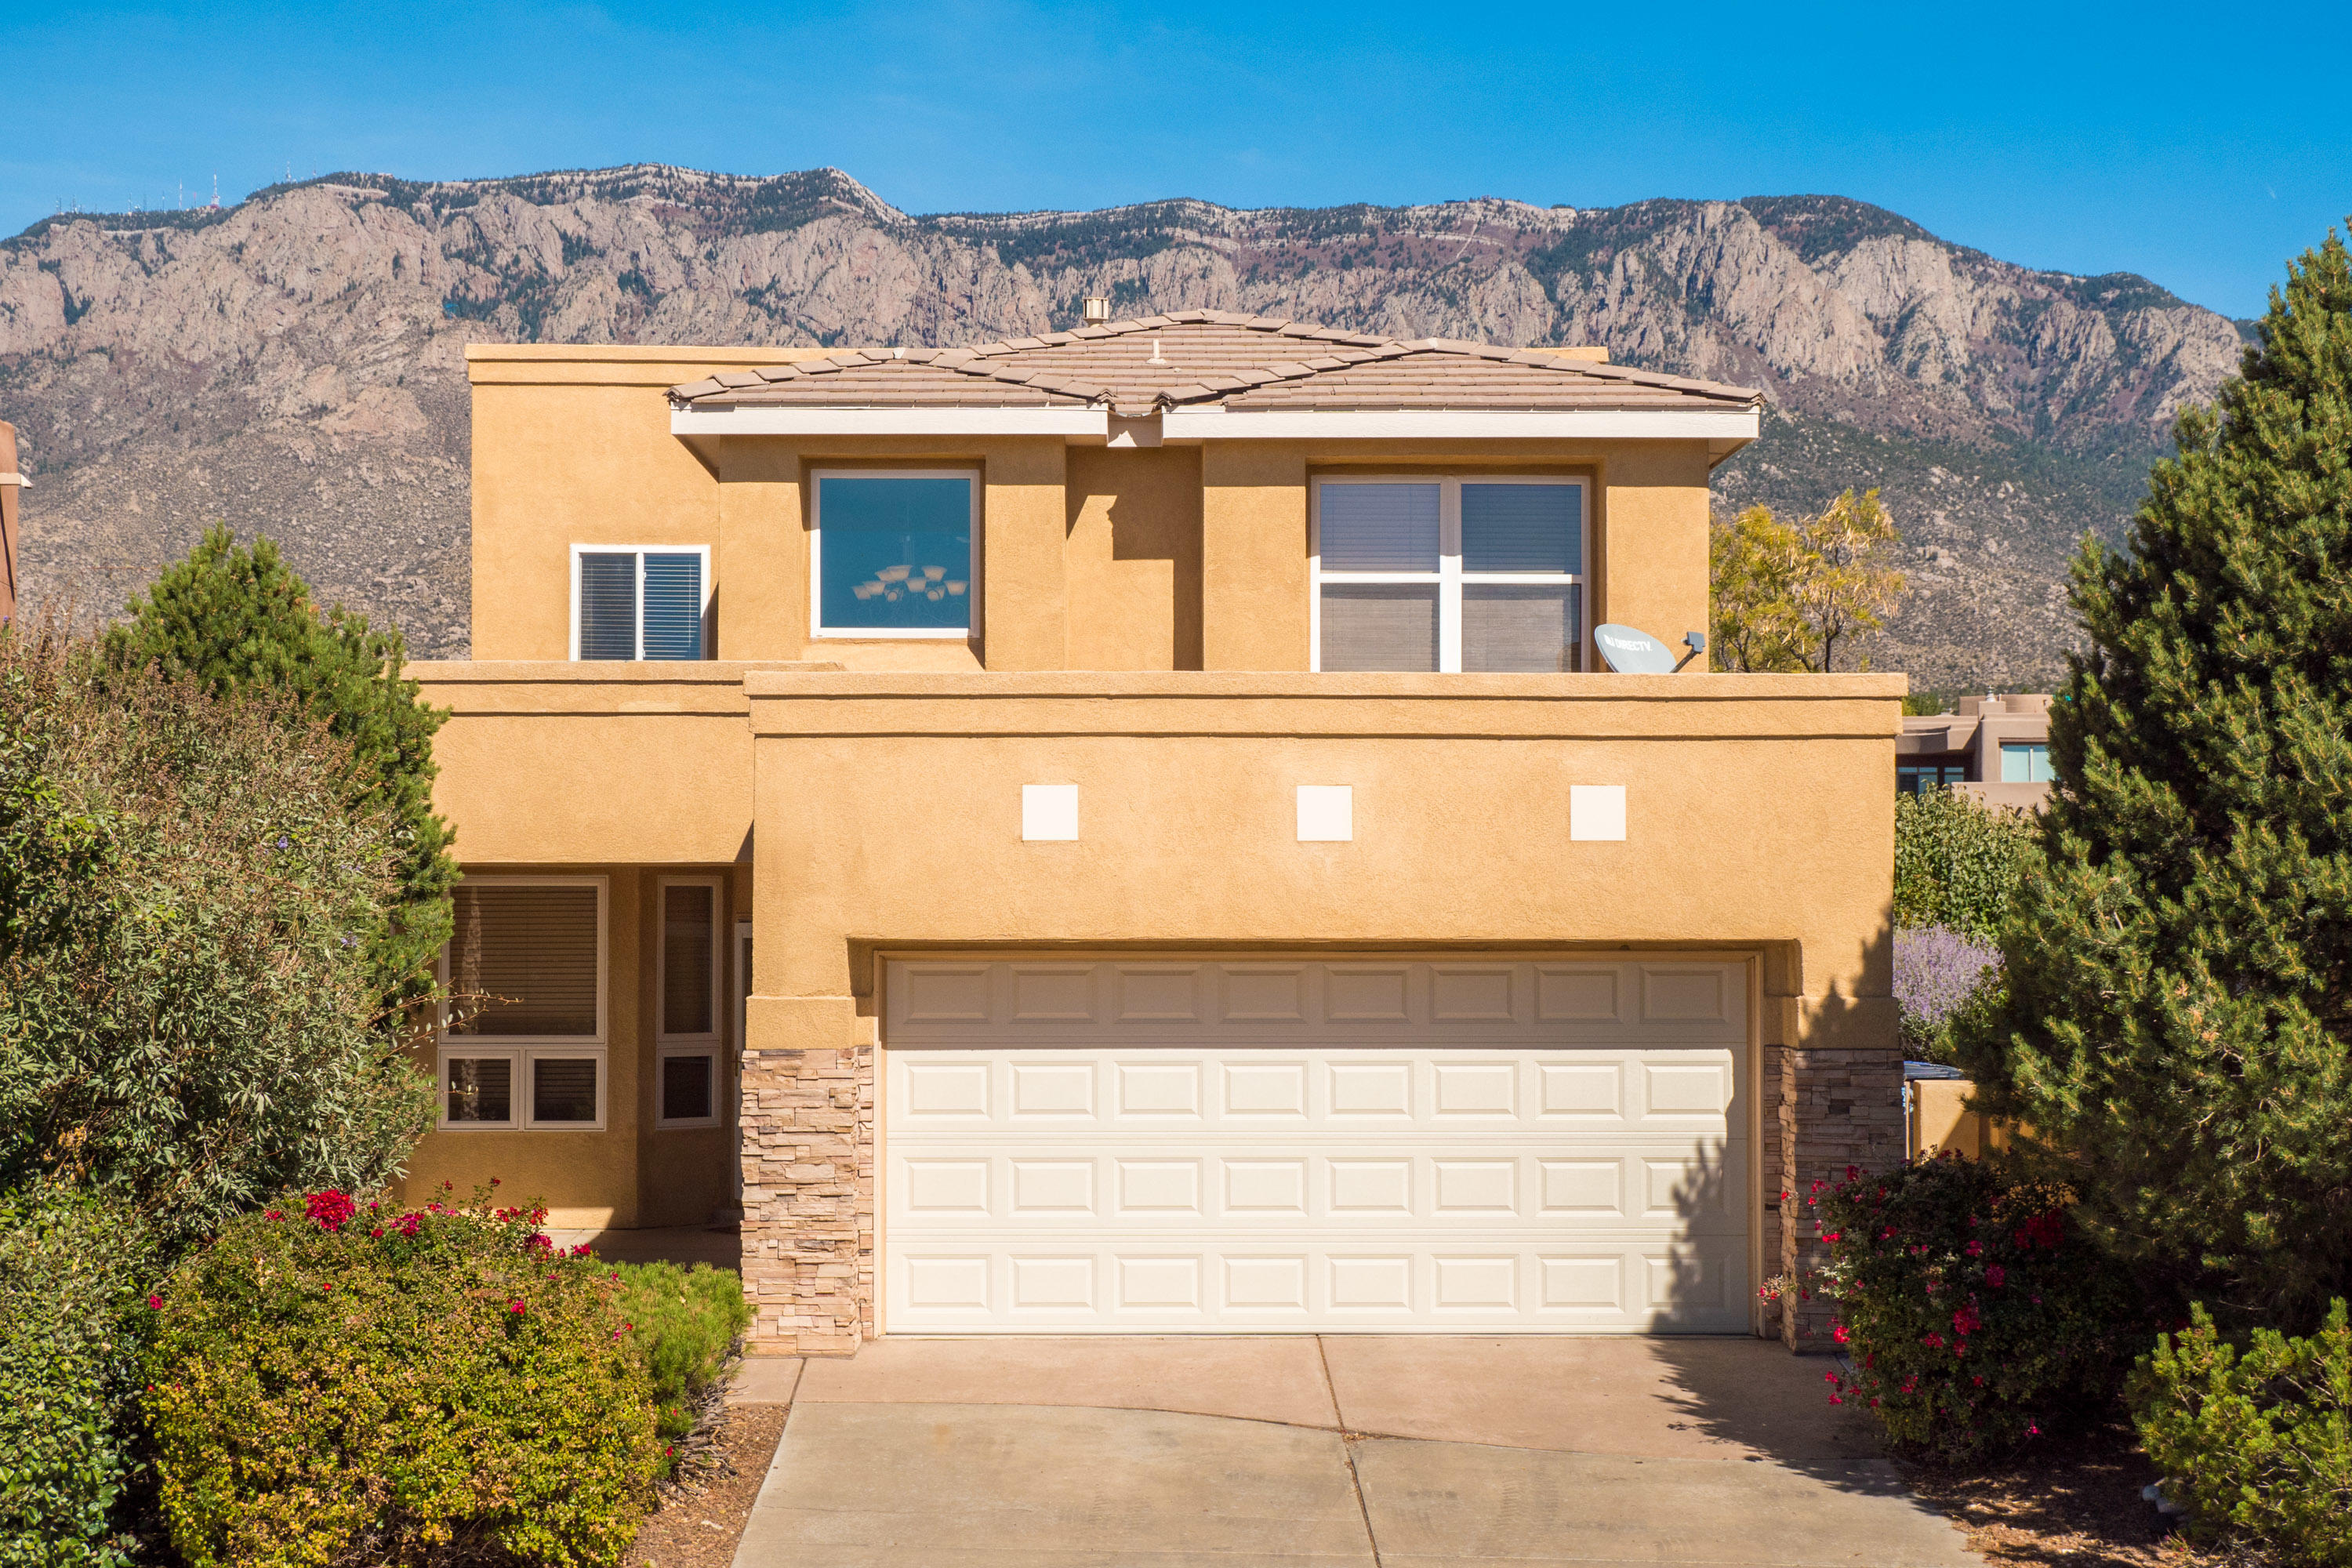 Open House Saturday 10/24 12-2pm. Welcome Home to this bright and open Desert Mountain  home. Picture perfect views of the Sandias, open concept floor plan with master bedroom on the main level. Two additonal bedrooms upstairs, with a loft/office space. The home is in an ideal location, right across from the community pool. This was the prime lot in the neighborhood when the developer started building. 2 car garage, easy maintenance yard, with a beautiful rock fountain, and patios ideal for entertaining. Walking trails, and parks nearby. Hurry this home wont last!